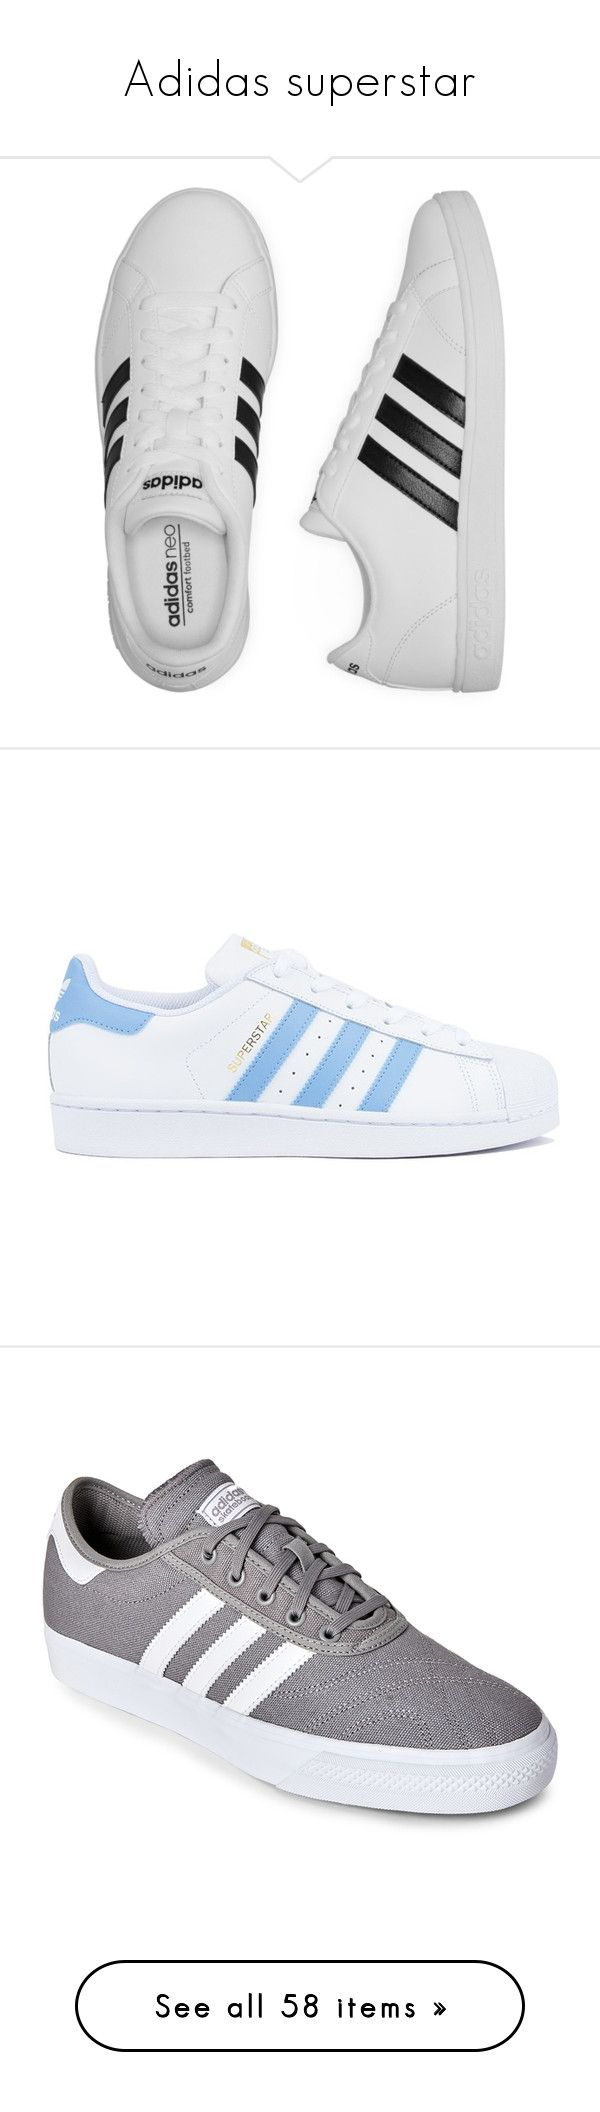 """Adidas superstar"" by iamgl2002 ❤ liked on Polyvore featuring shoes, sneakers, adidas shoes, adidas trainers, adidas footwear, adidas sneakers, adidas, blue, clothes - shoes and white trainers"